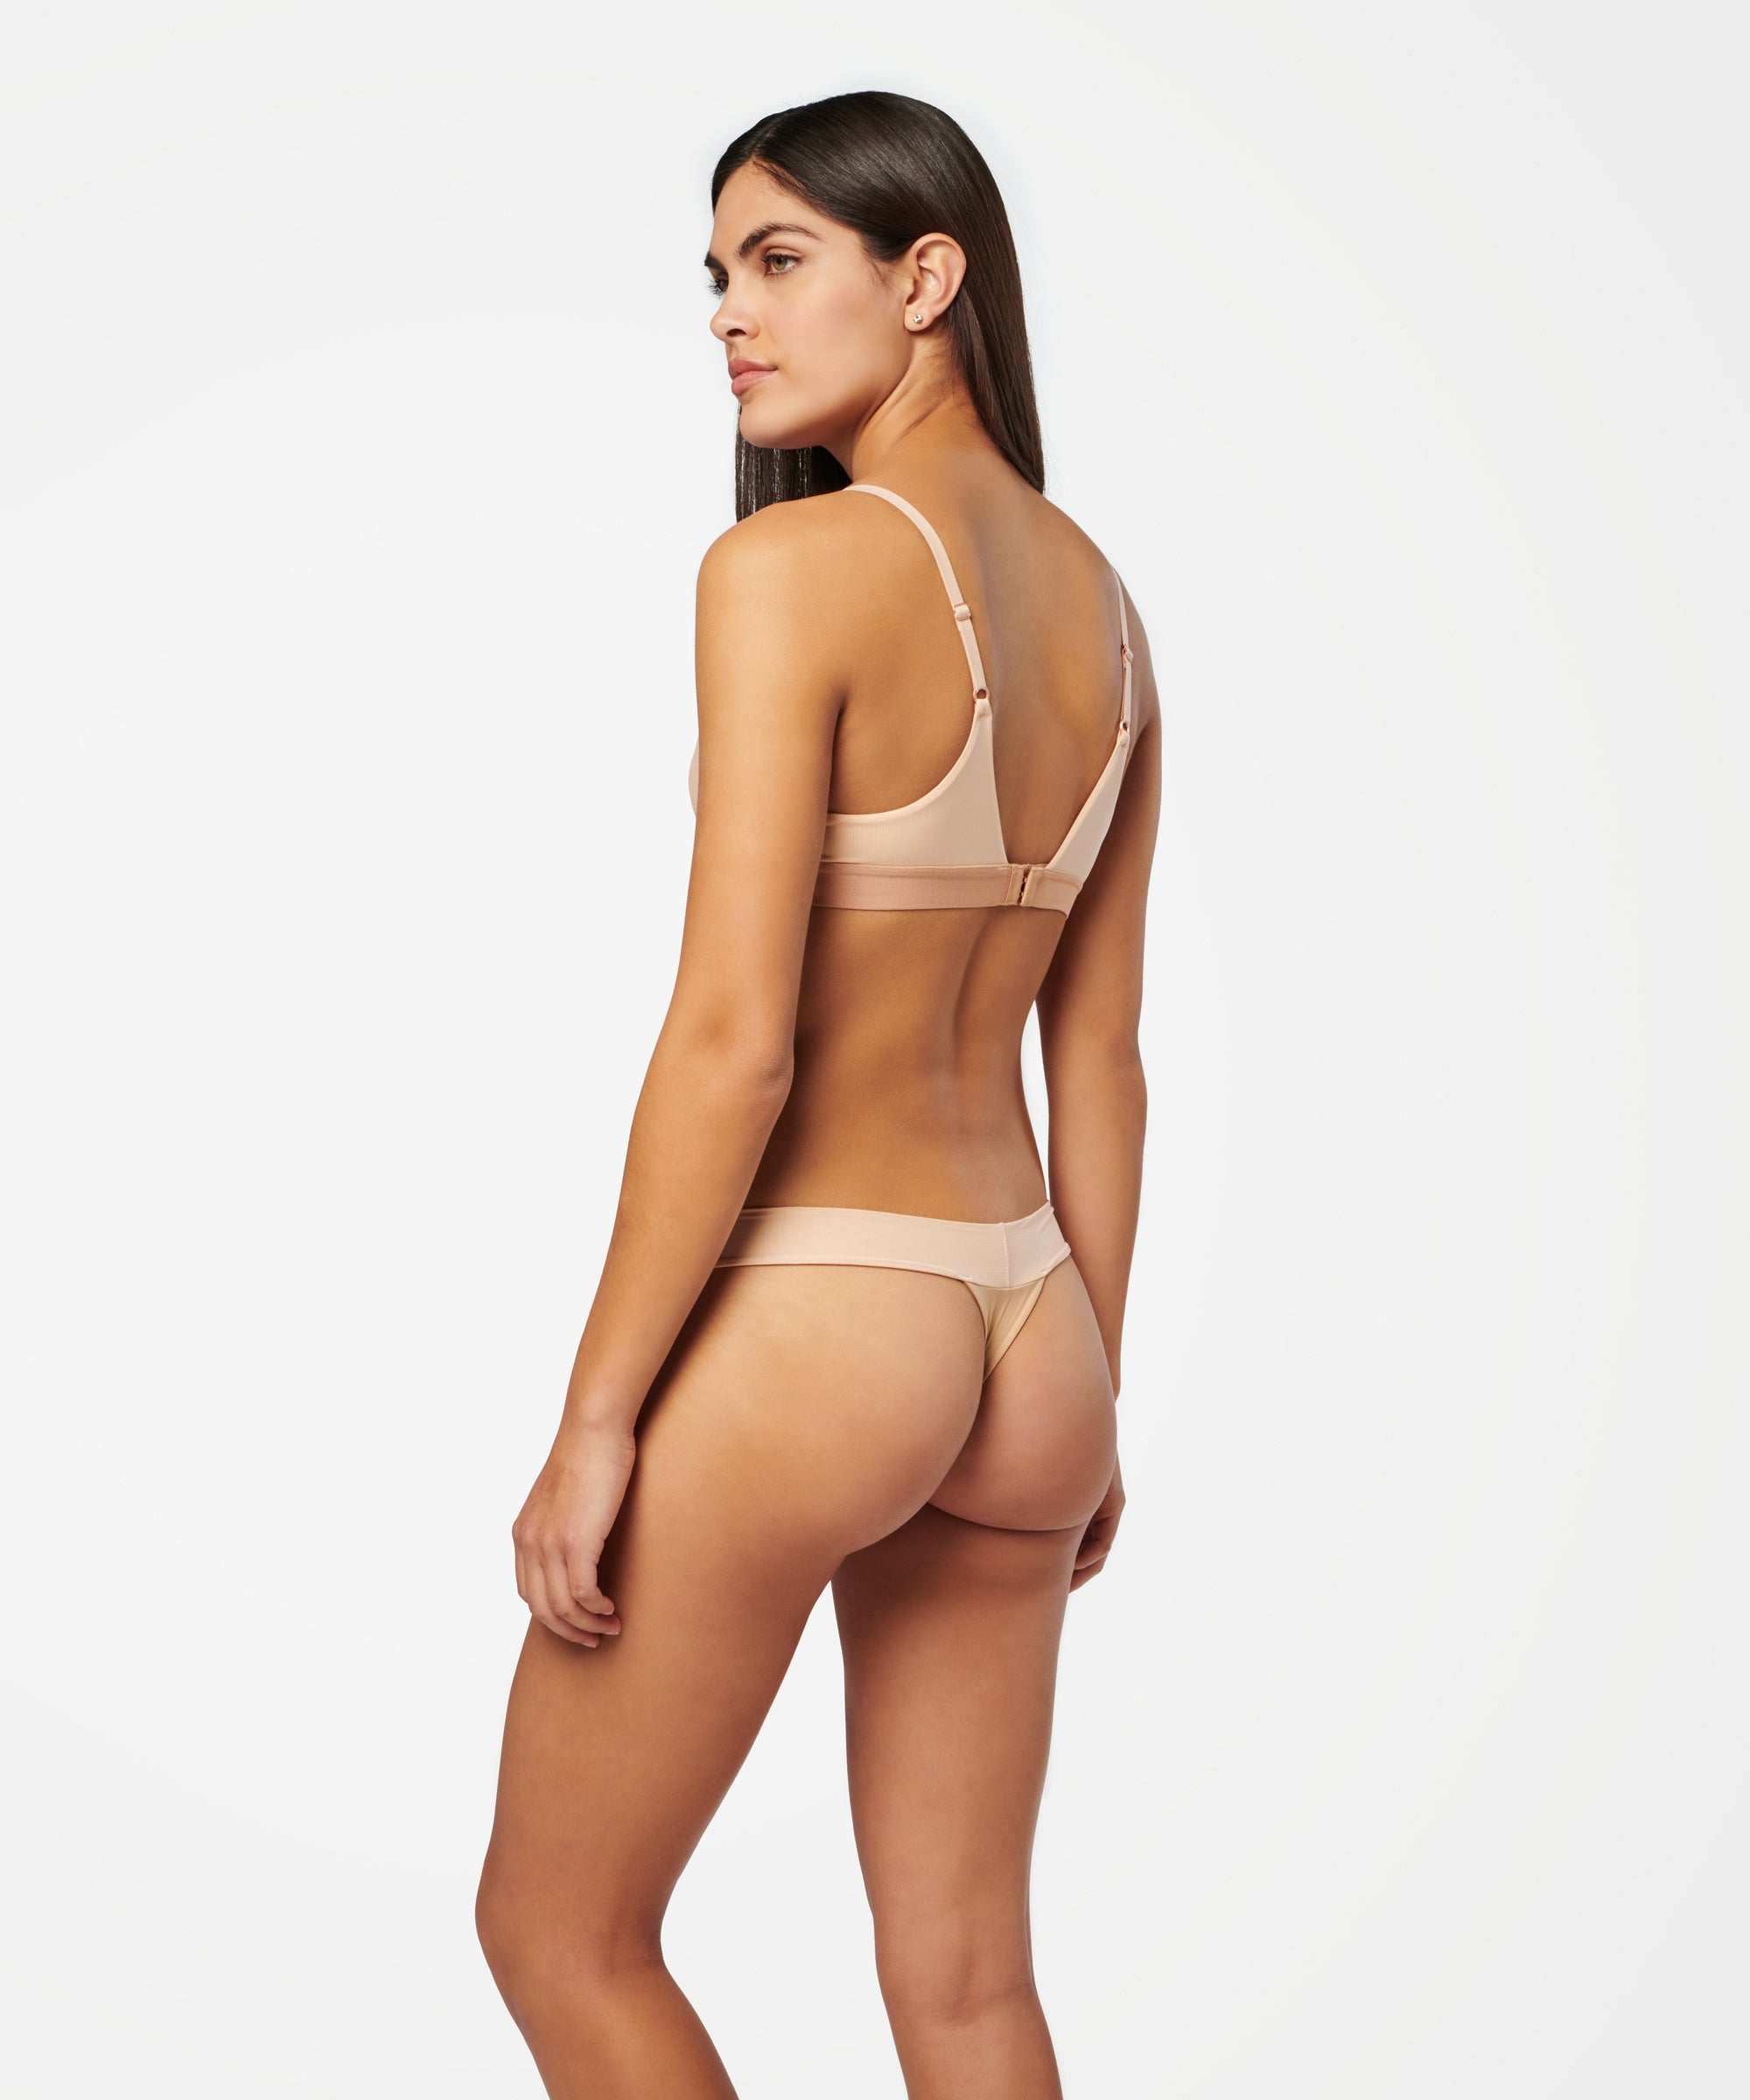 STANCE W'S UNDERWEAR WIDE SIDE THONG NYLON - UNDIES